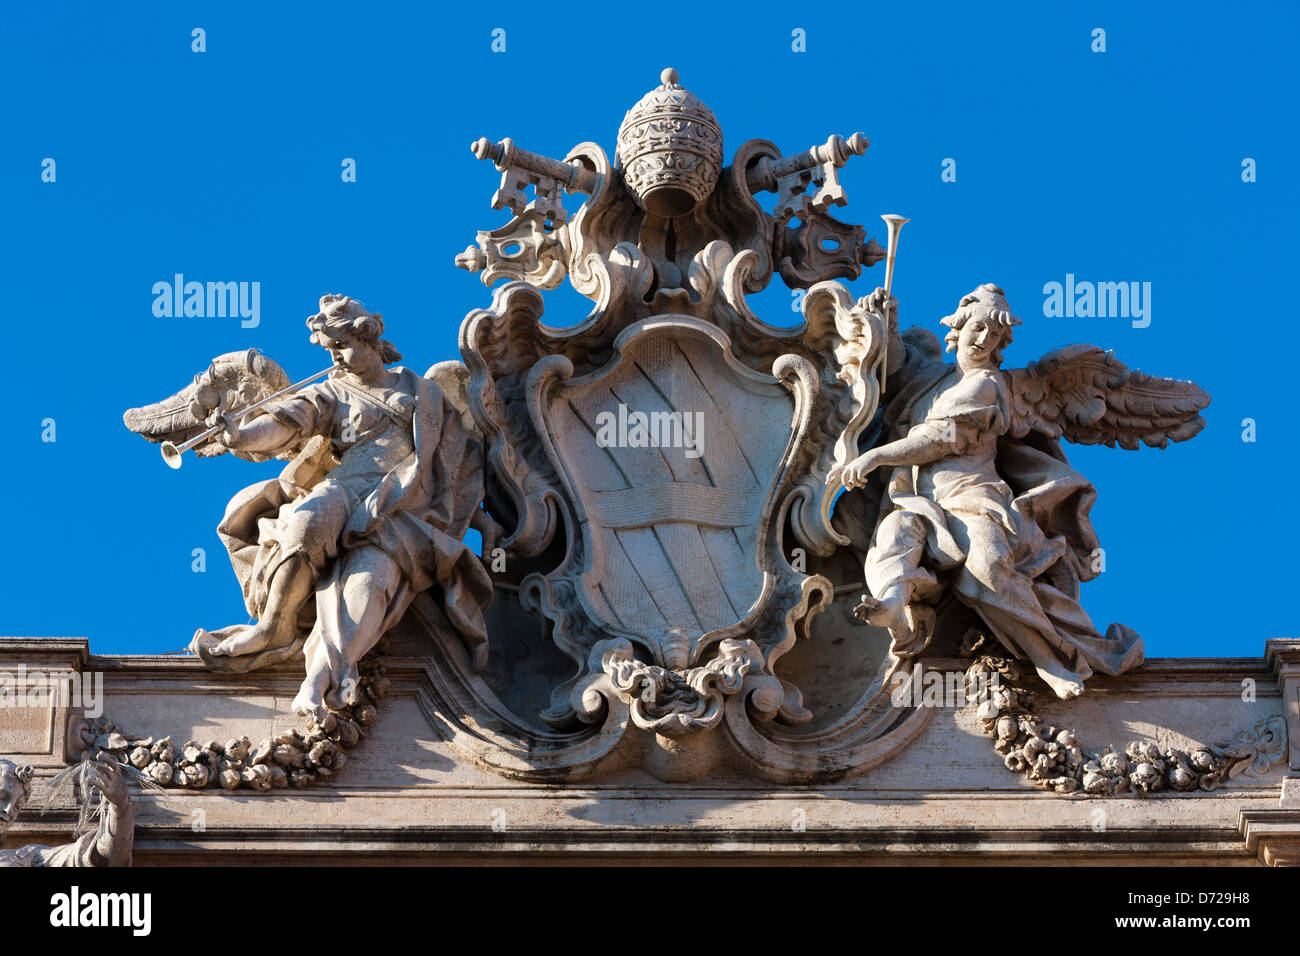 The heraldic shield at the top of the Trevi Fountain, Rome, Italy - Stock Image